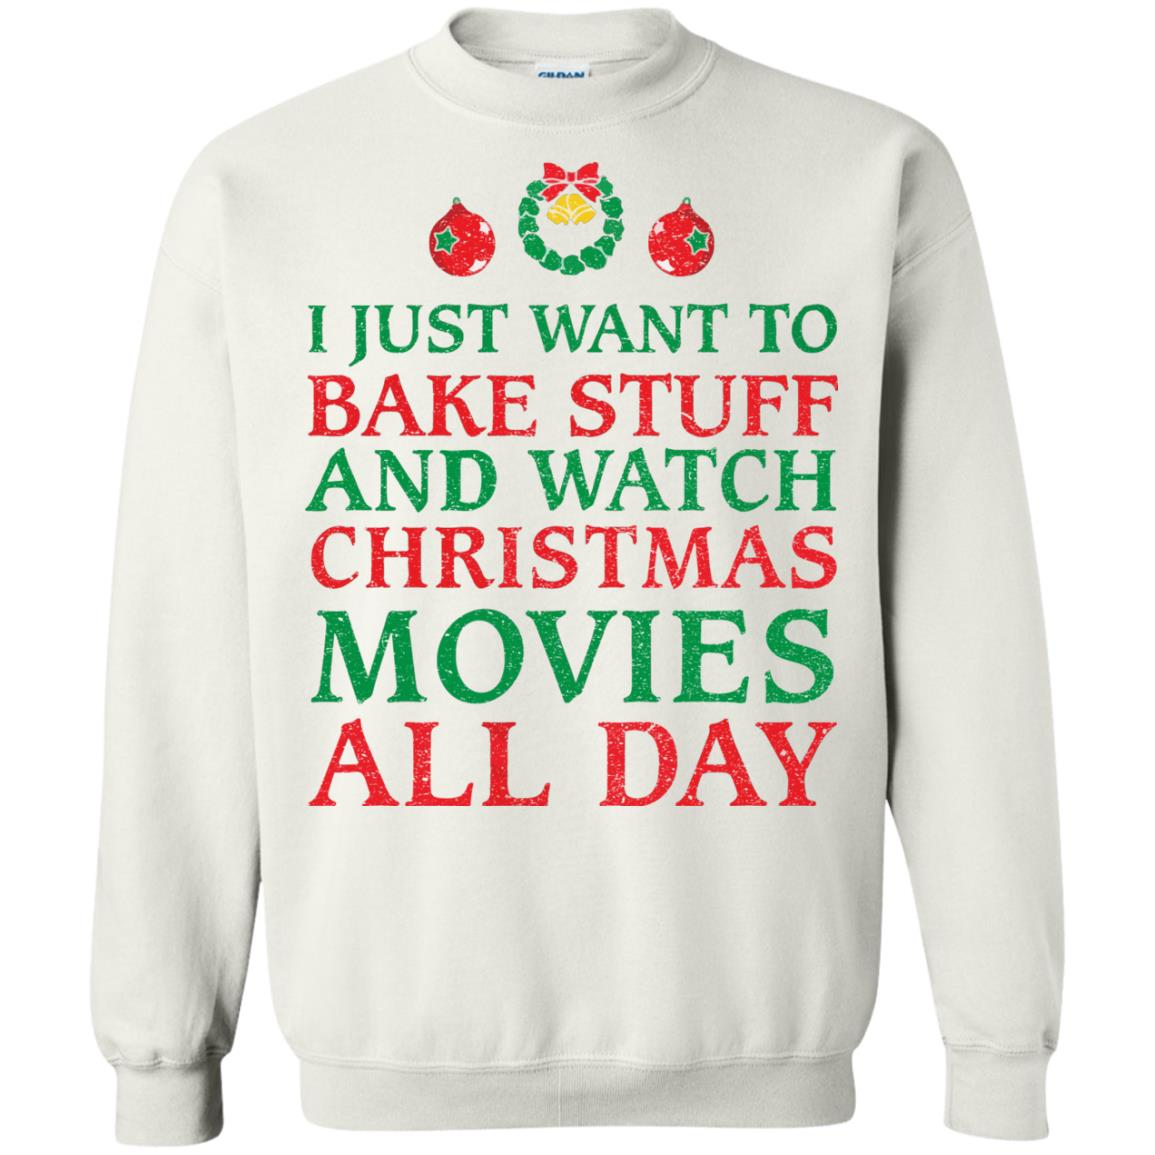 image 2701 - I Just Want to Bake Stuff and Watch Christmas Movie All Day Sweater, Ugly Sweatshirts